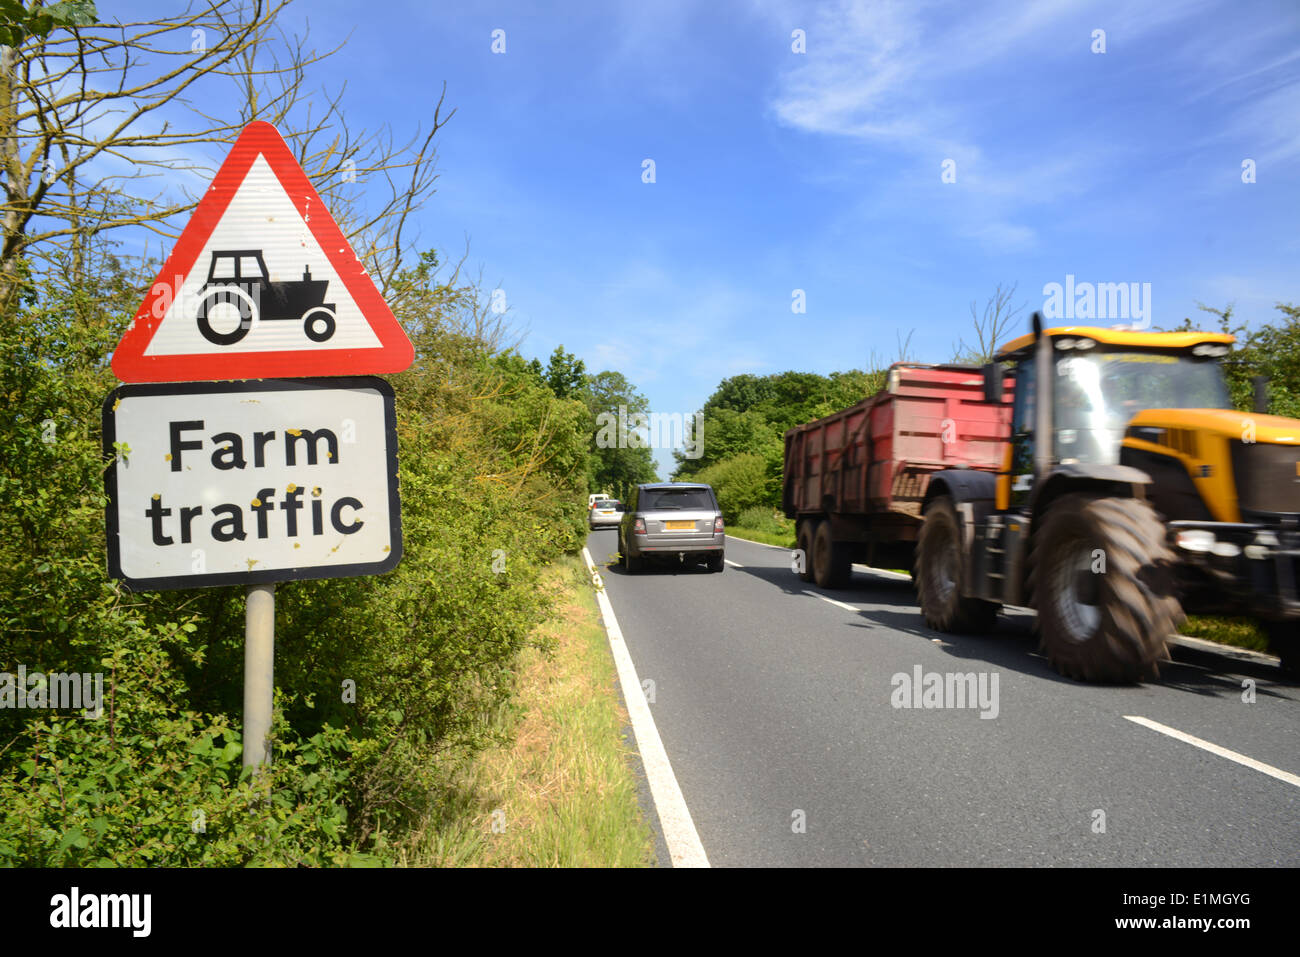 tractor and trailer passing warning sign of farm traffic in road ahead yorkshire united kingdom - Stock Image